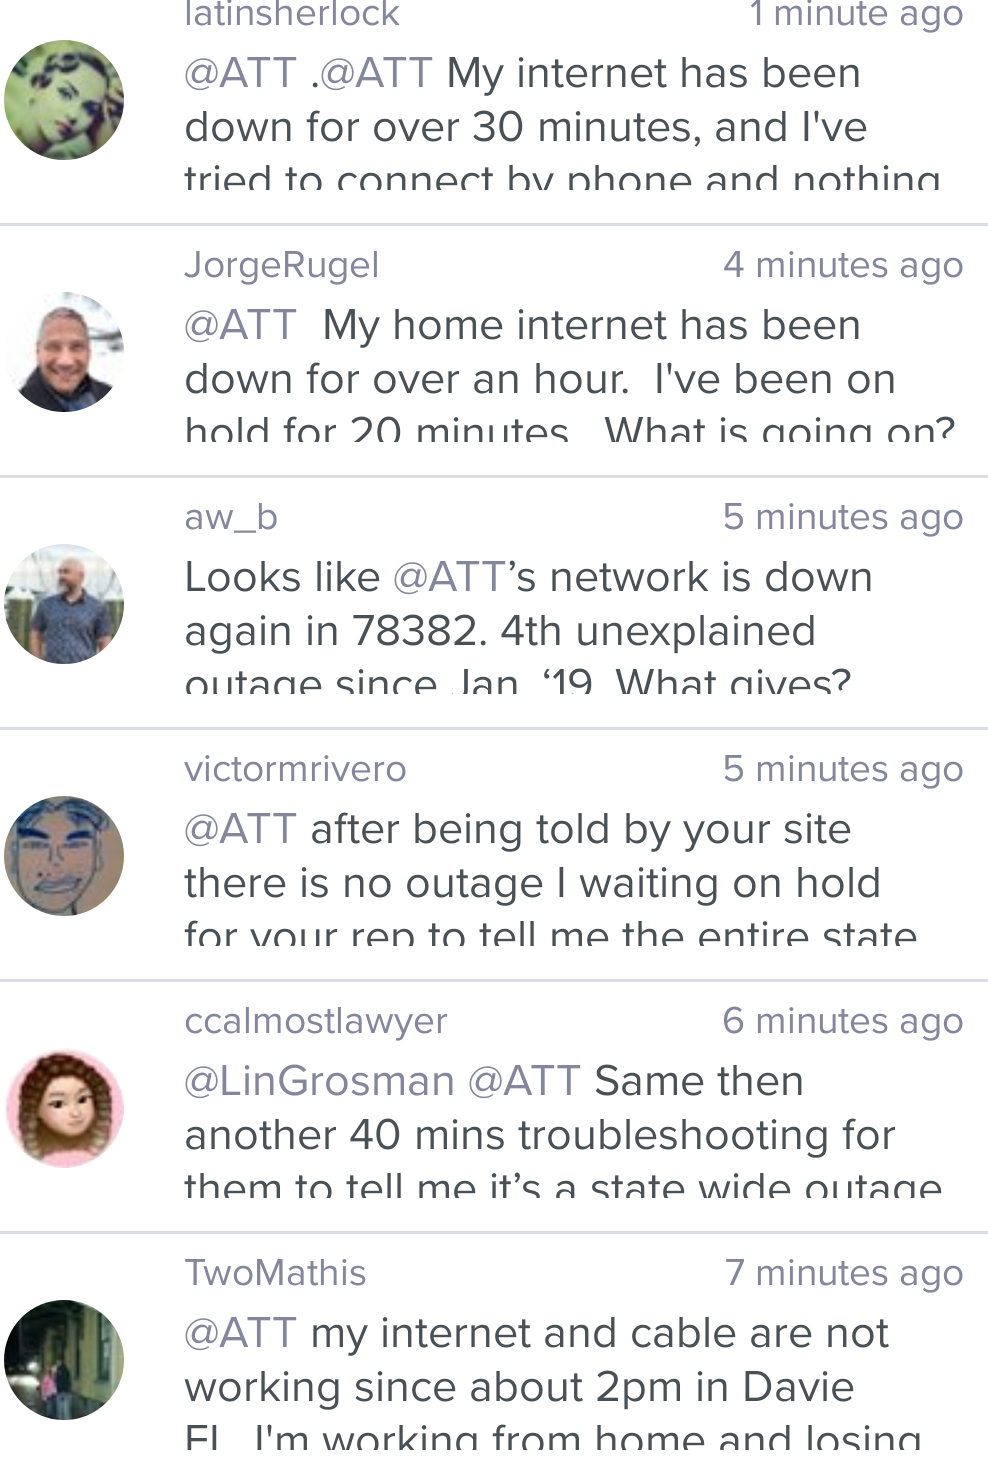 AT&T internet down (not working)